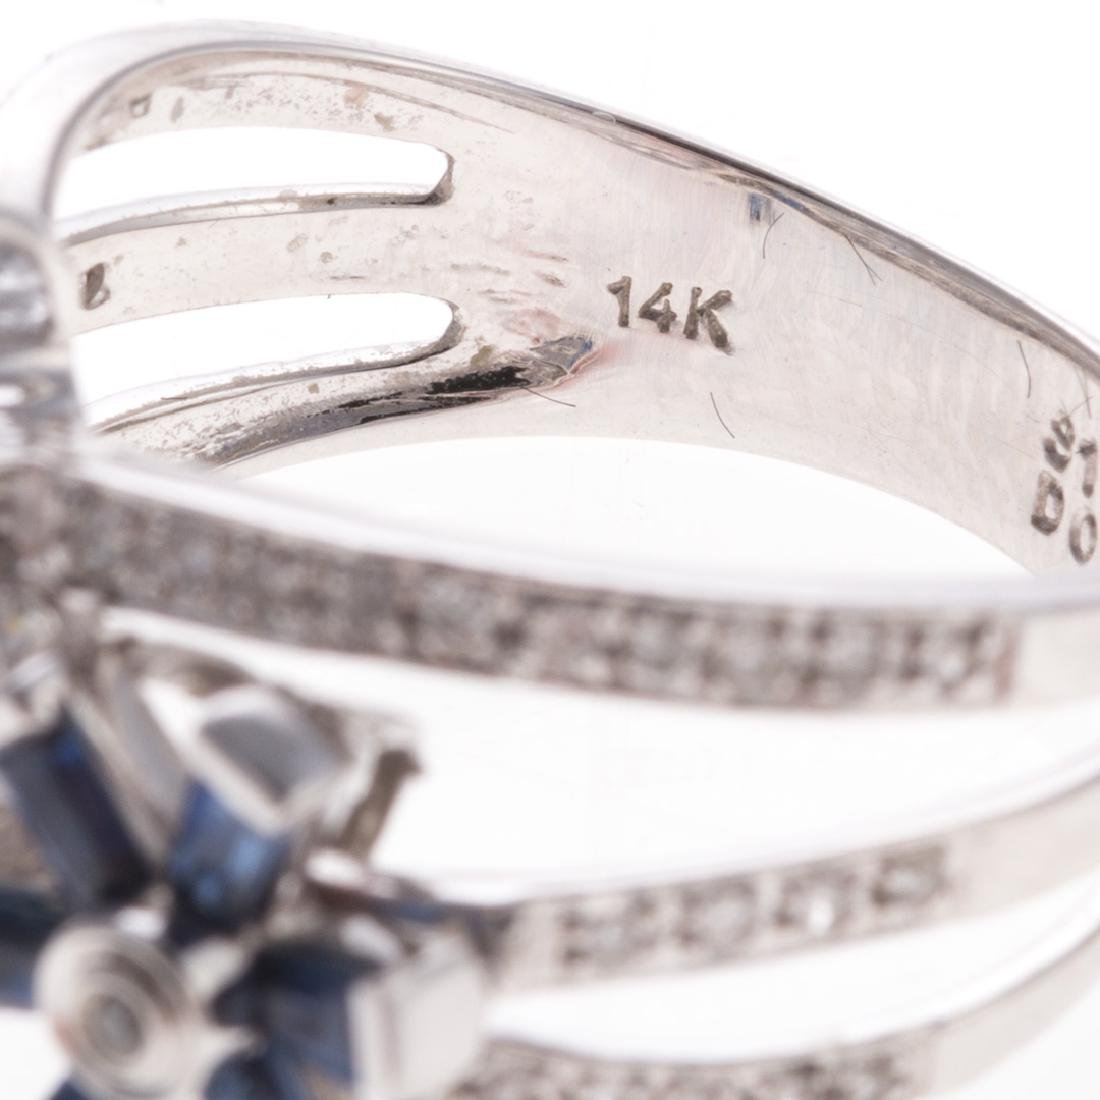 A Lady's Sapphire & Diamond Ring in 14K Gold - 5